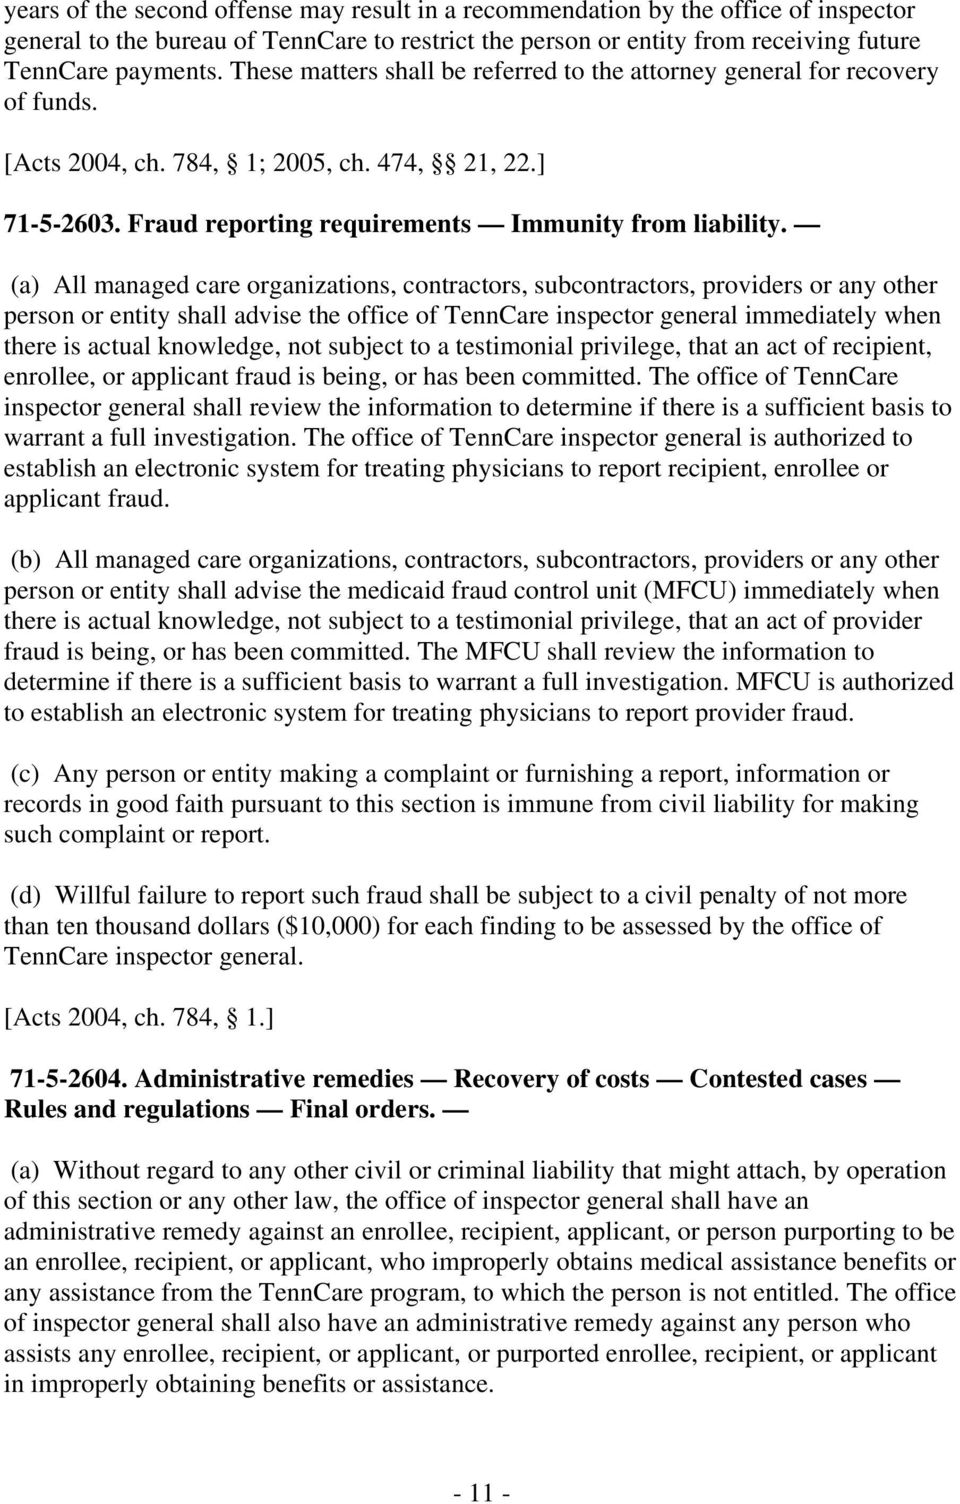 (a) All managed care organizations, contractors, subcontractors, providers or any other person or entity shall advise the office of TennCare inspector general immediately when there is actual